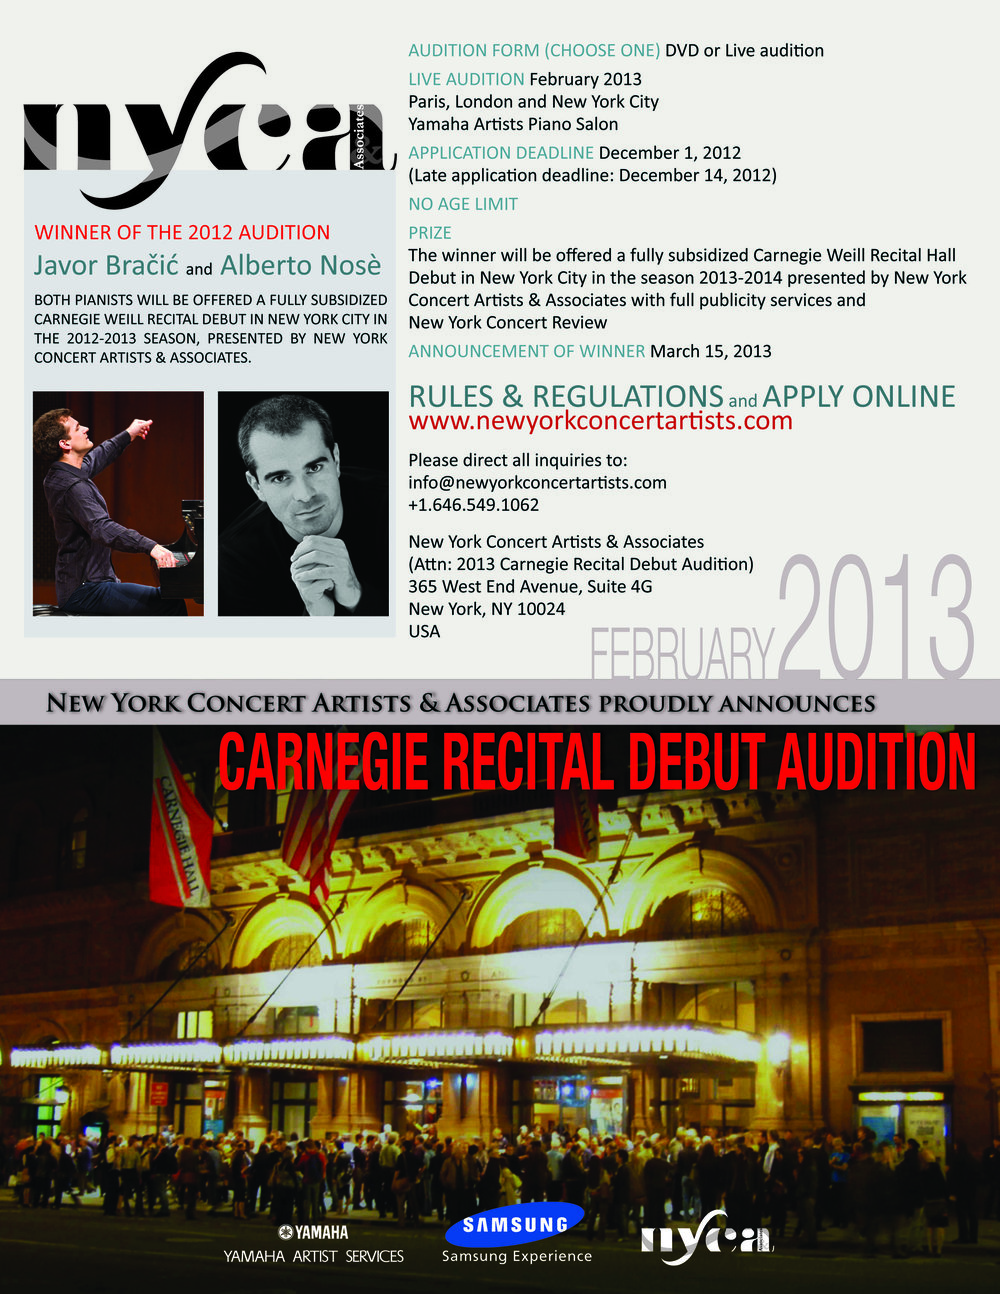 2013NYCA_CARNEGIE_RECITAL_AUDITION_8.5x11_v_EN_final.jpg